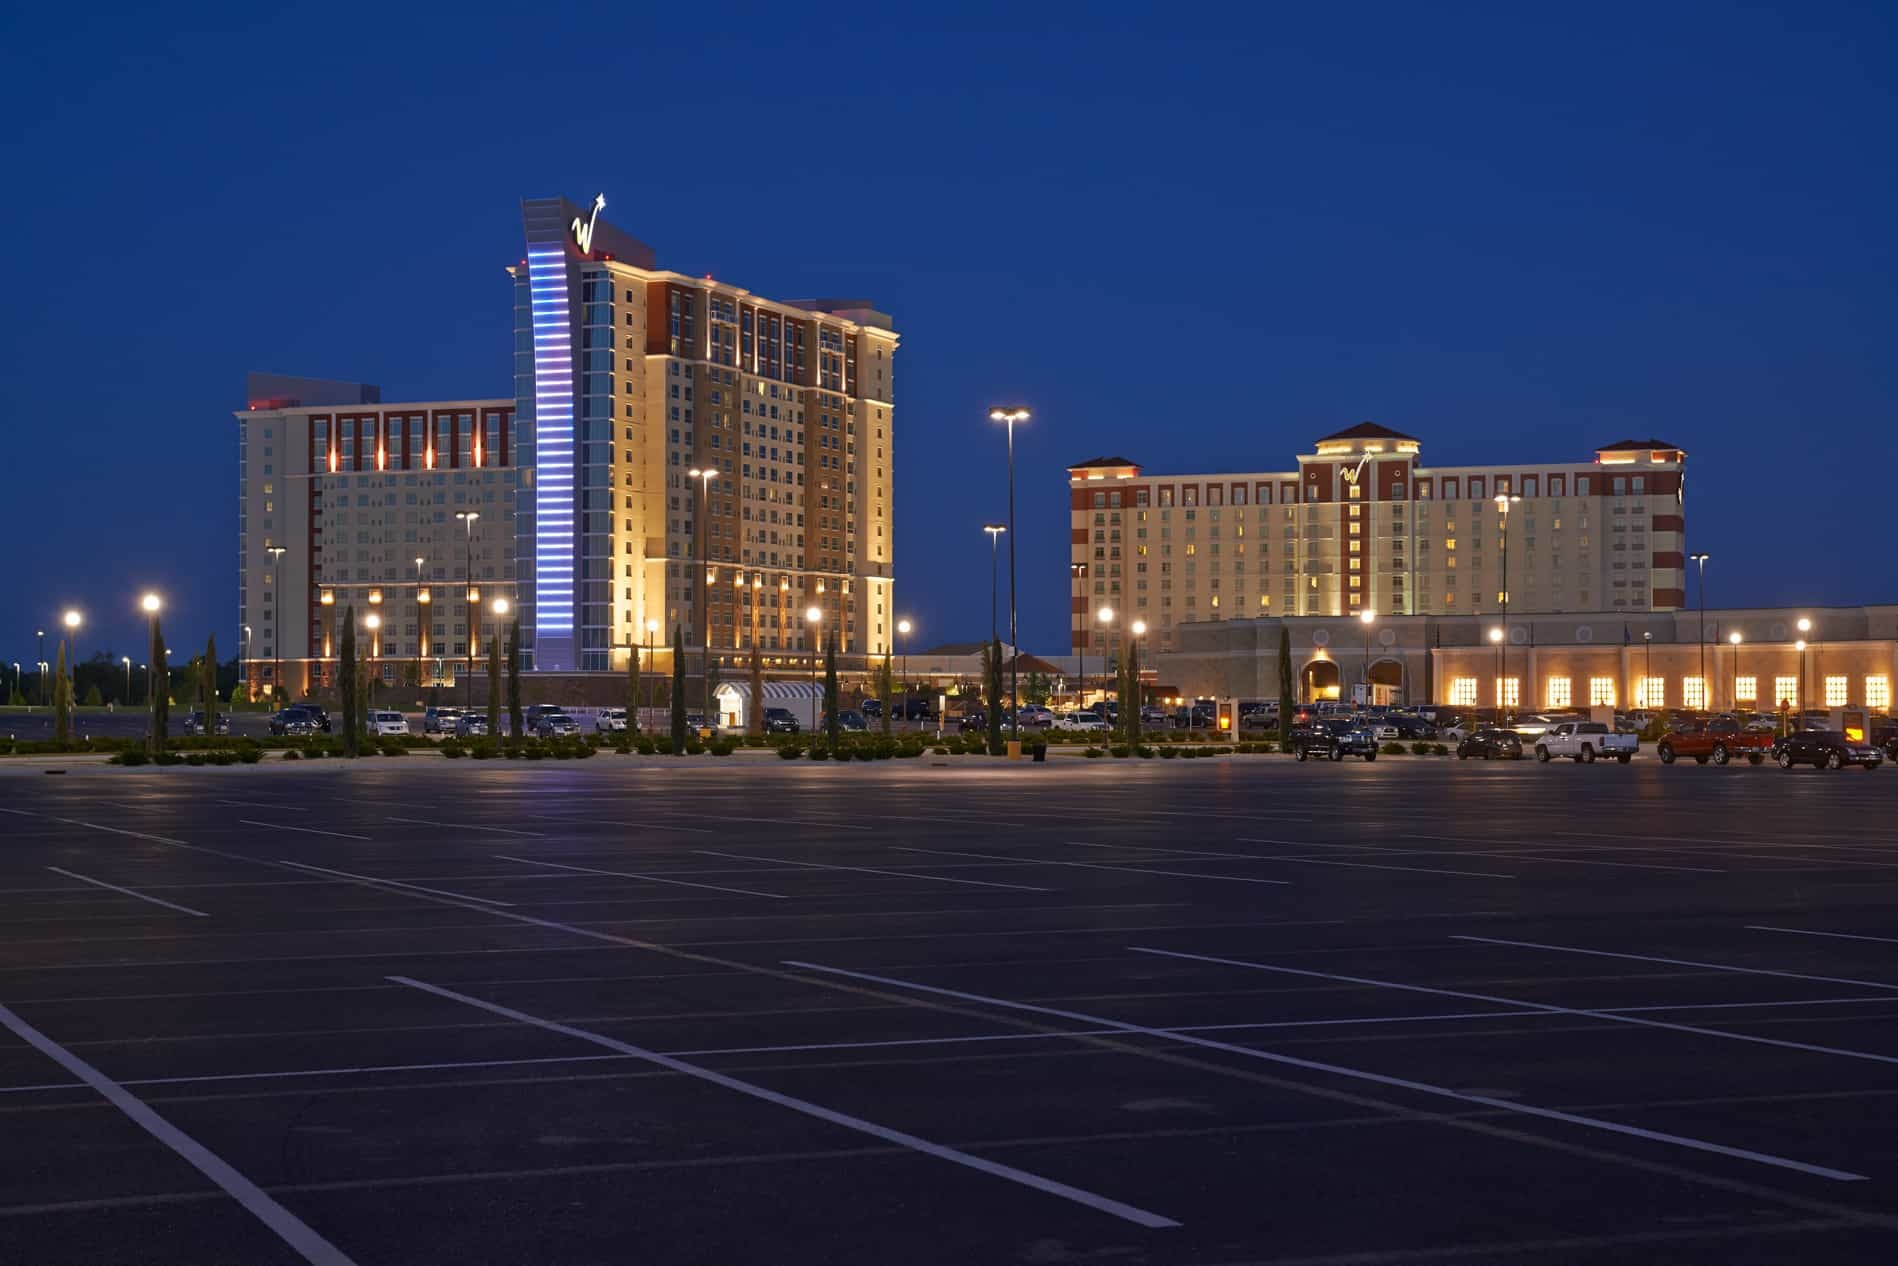 Winstar World And Resort Hotels